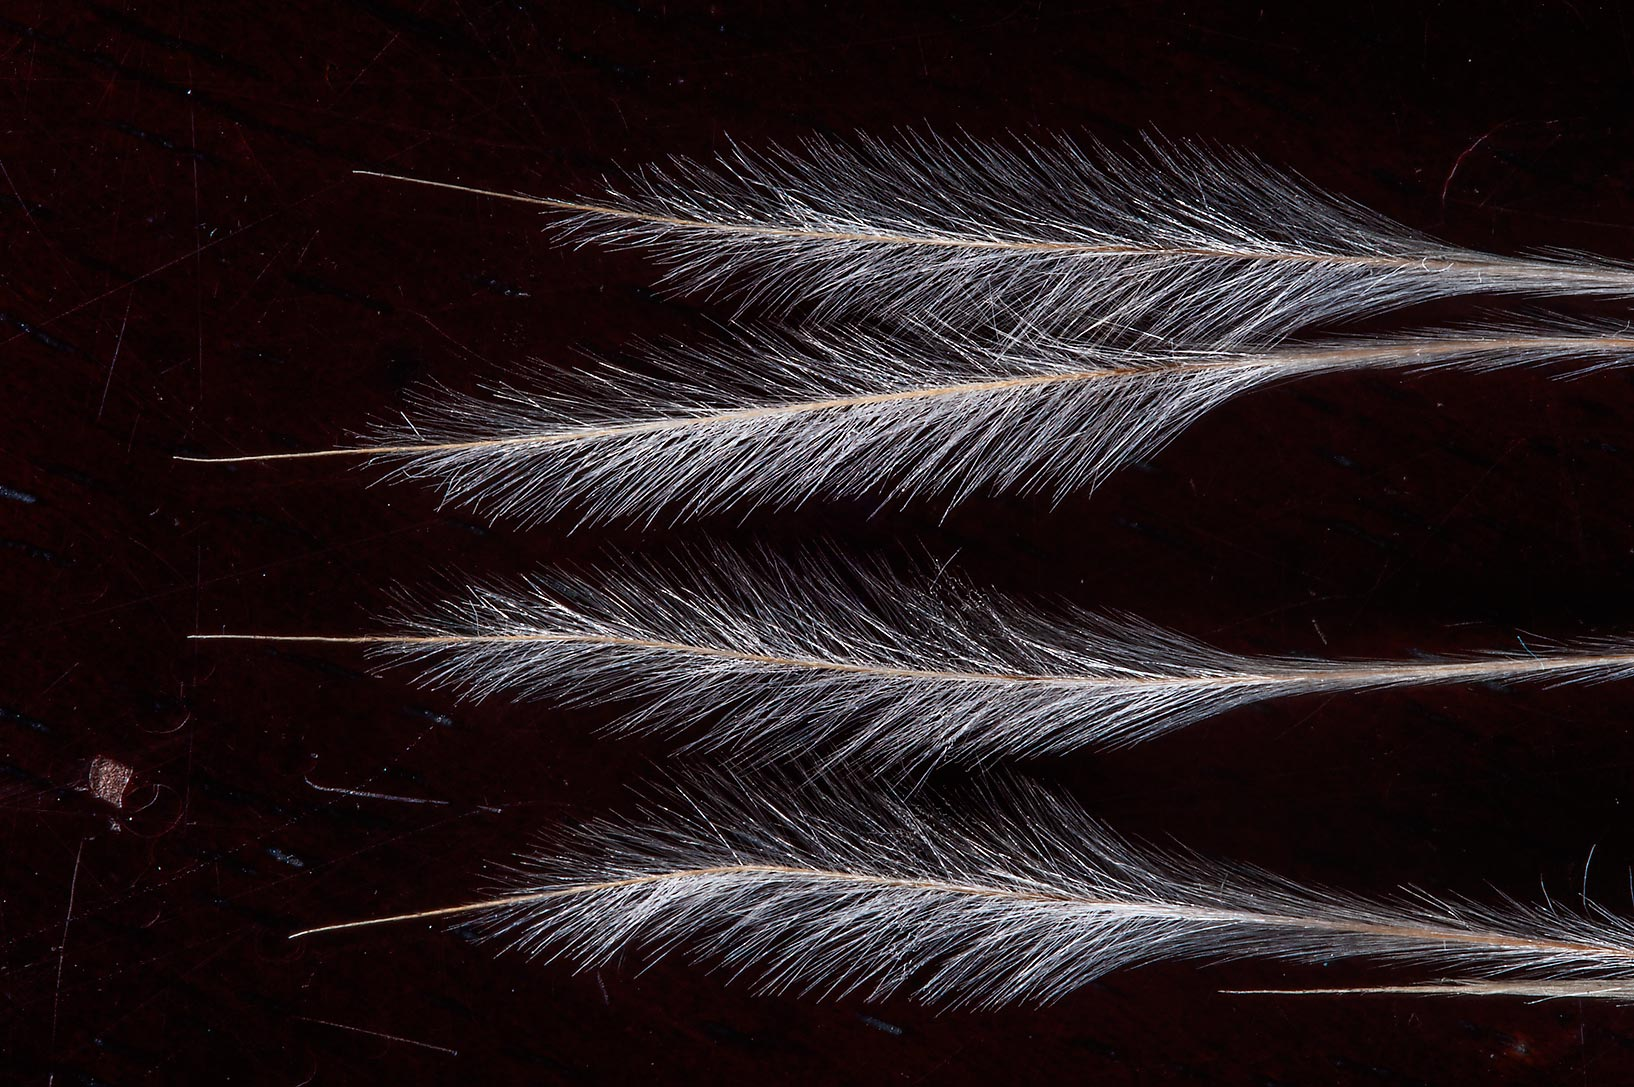 Feathery awns of slender grass Stipagrostis...of Jebel Fuwairit. Northern Qatar